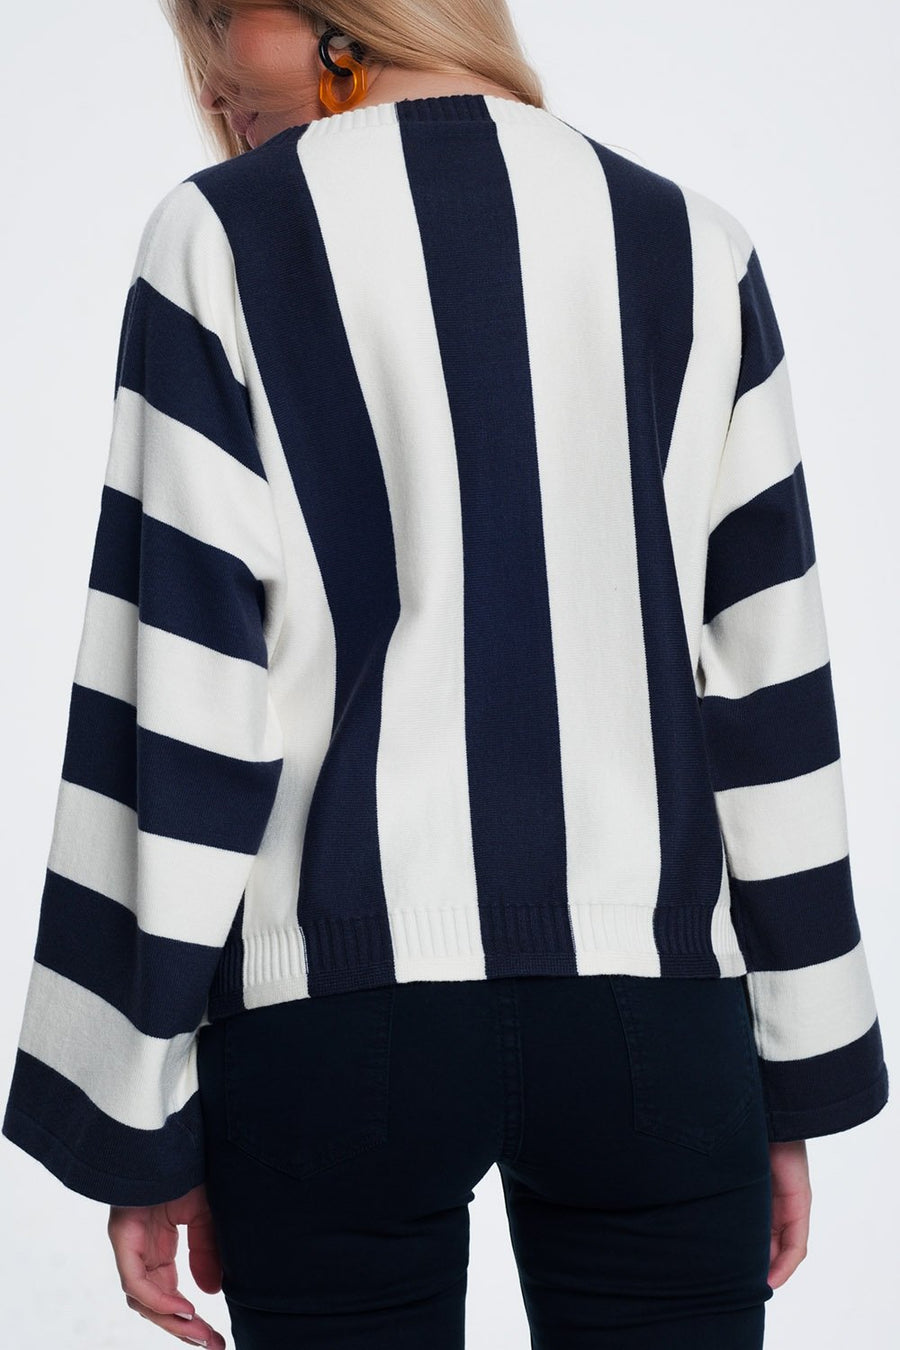 Scoop Neck Sweater in Mono Stripe Women - Apparel - Sweaters Cardigans and Tops Tigerlily and Me